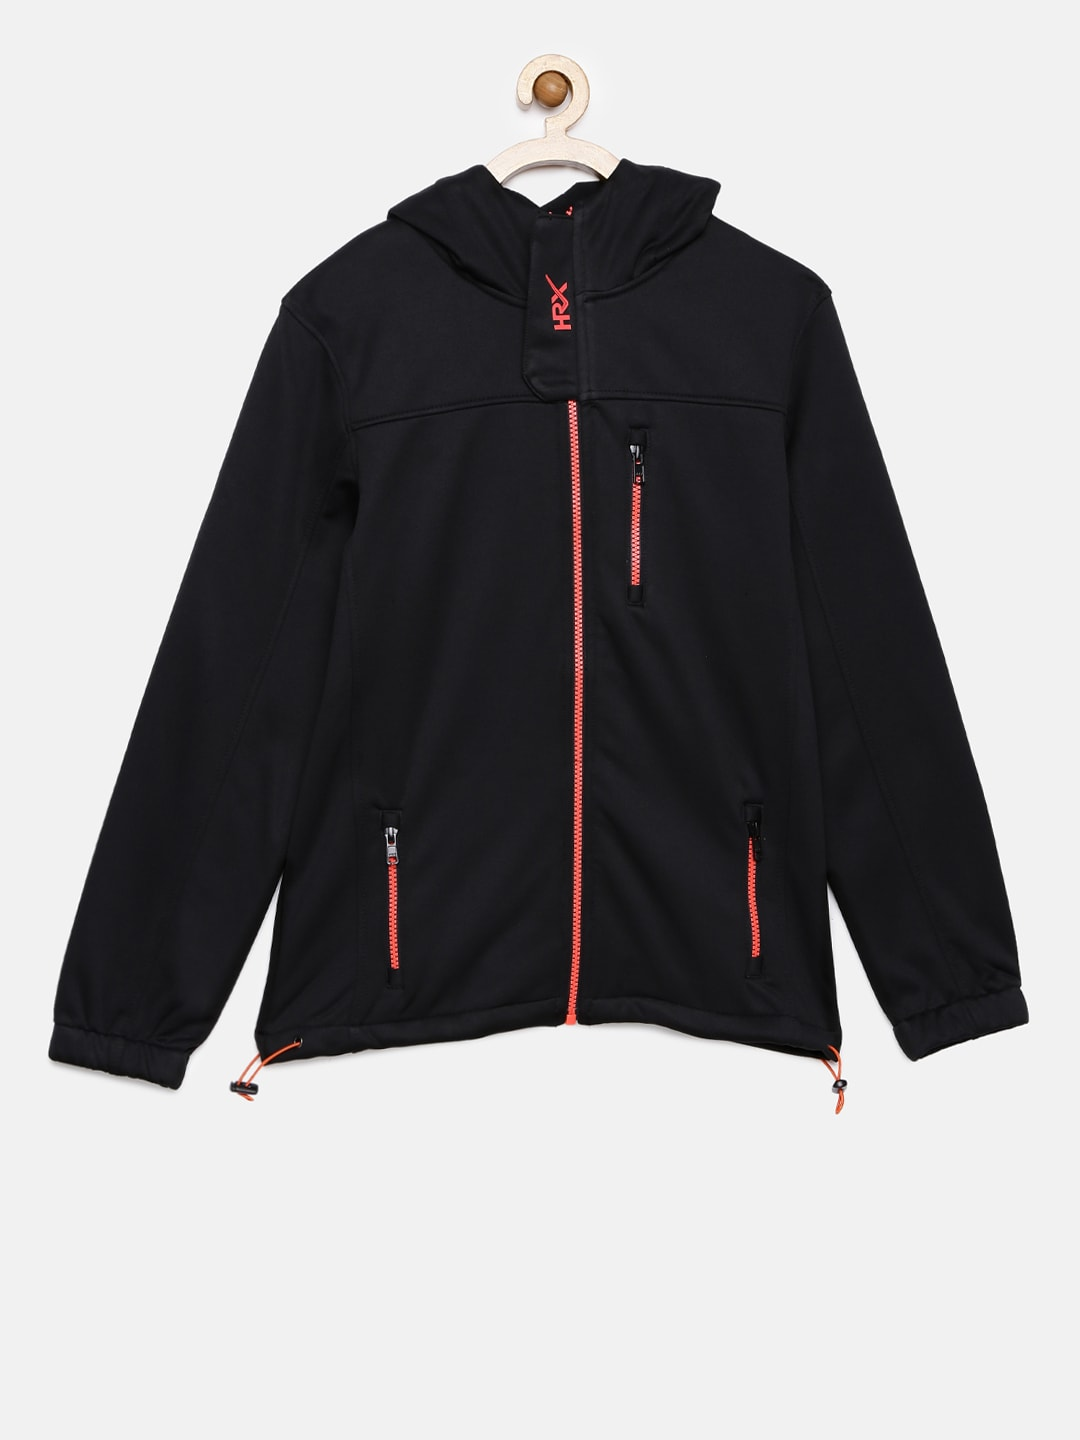 54d4d634bdbc Kids Jackets - Buy Jacket for Kids Online in India at Myntra